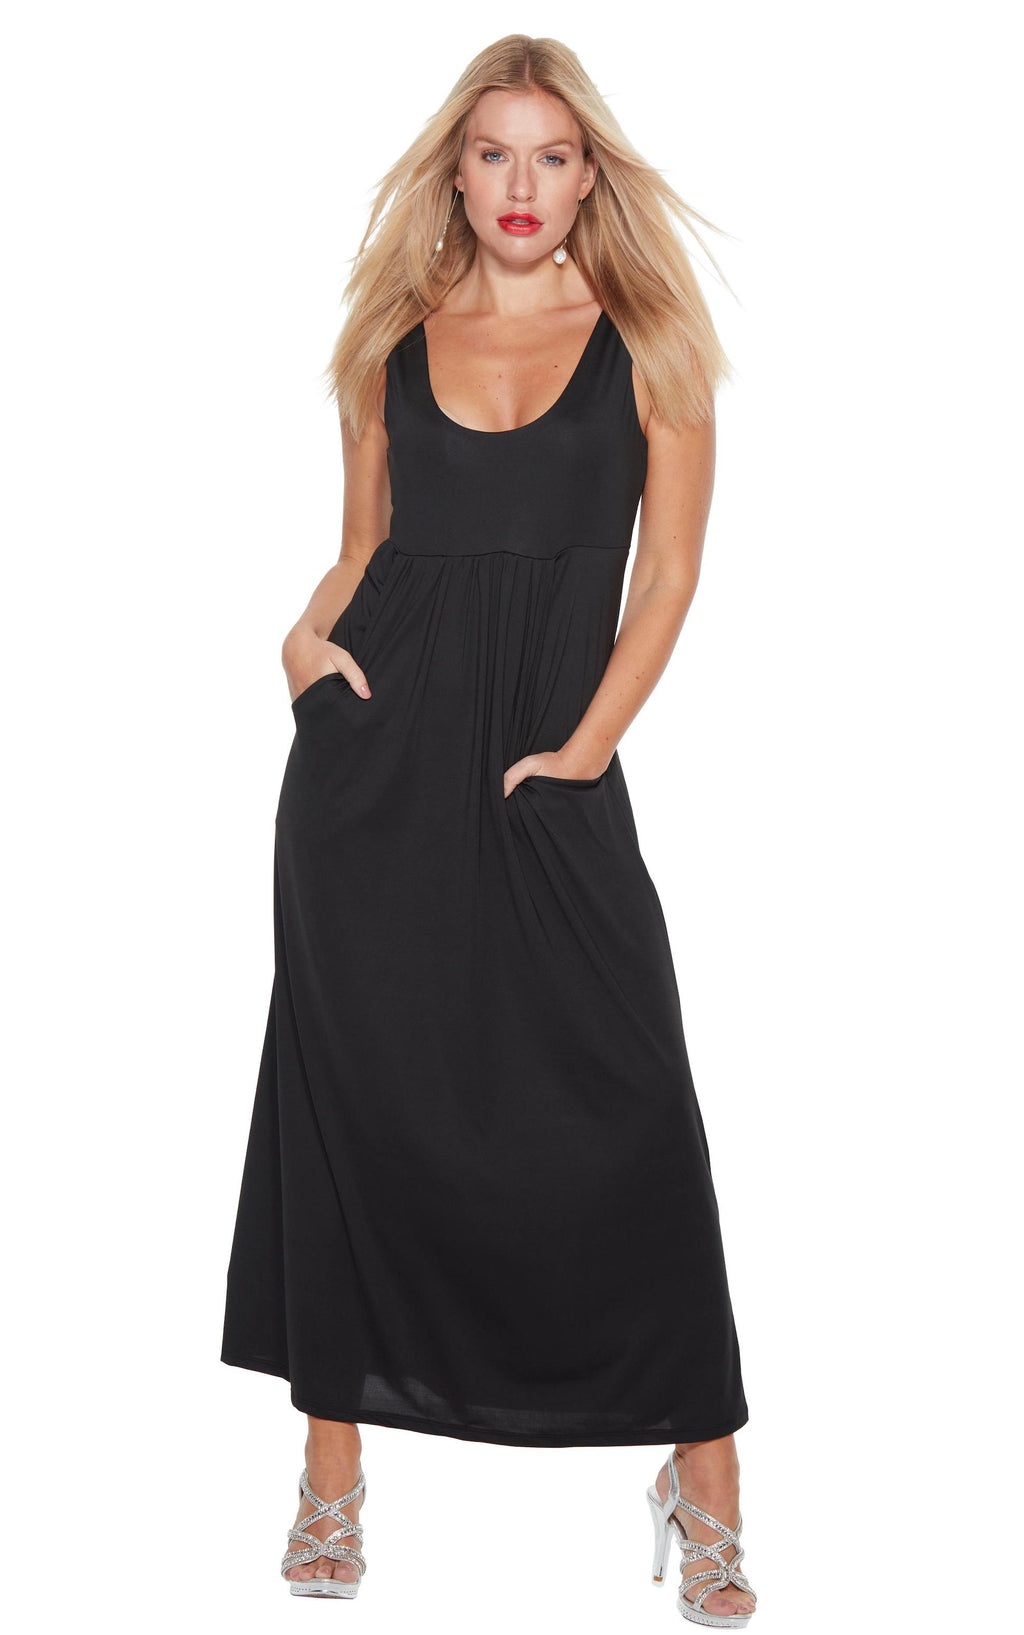 Black Maxi Dress - Audrey - Anywear collection